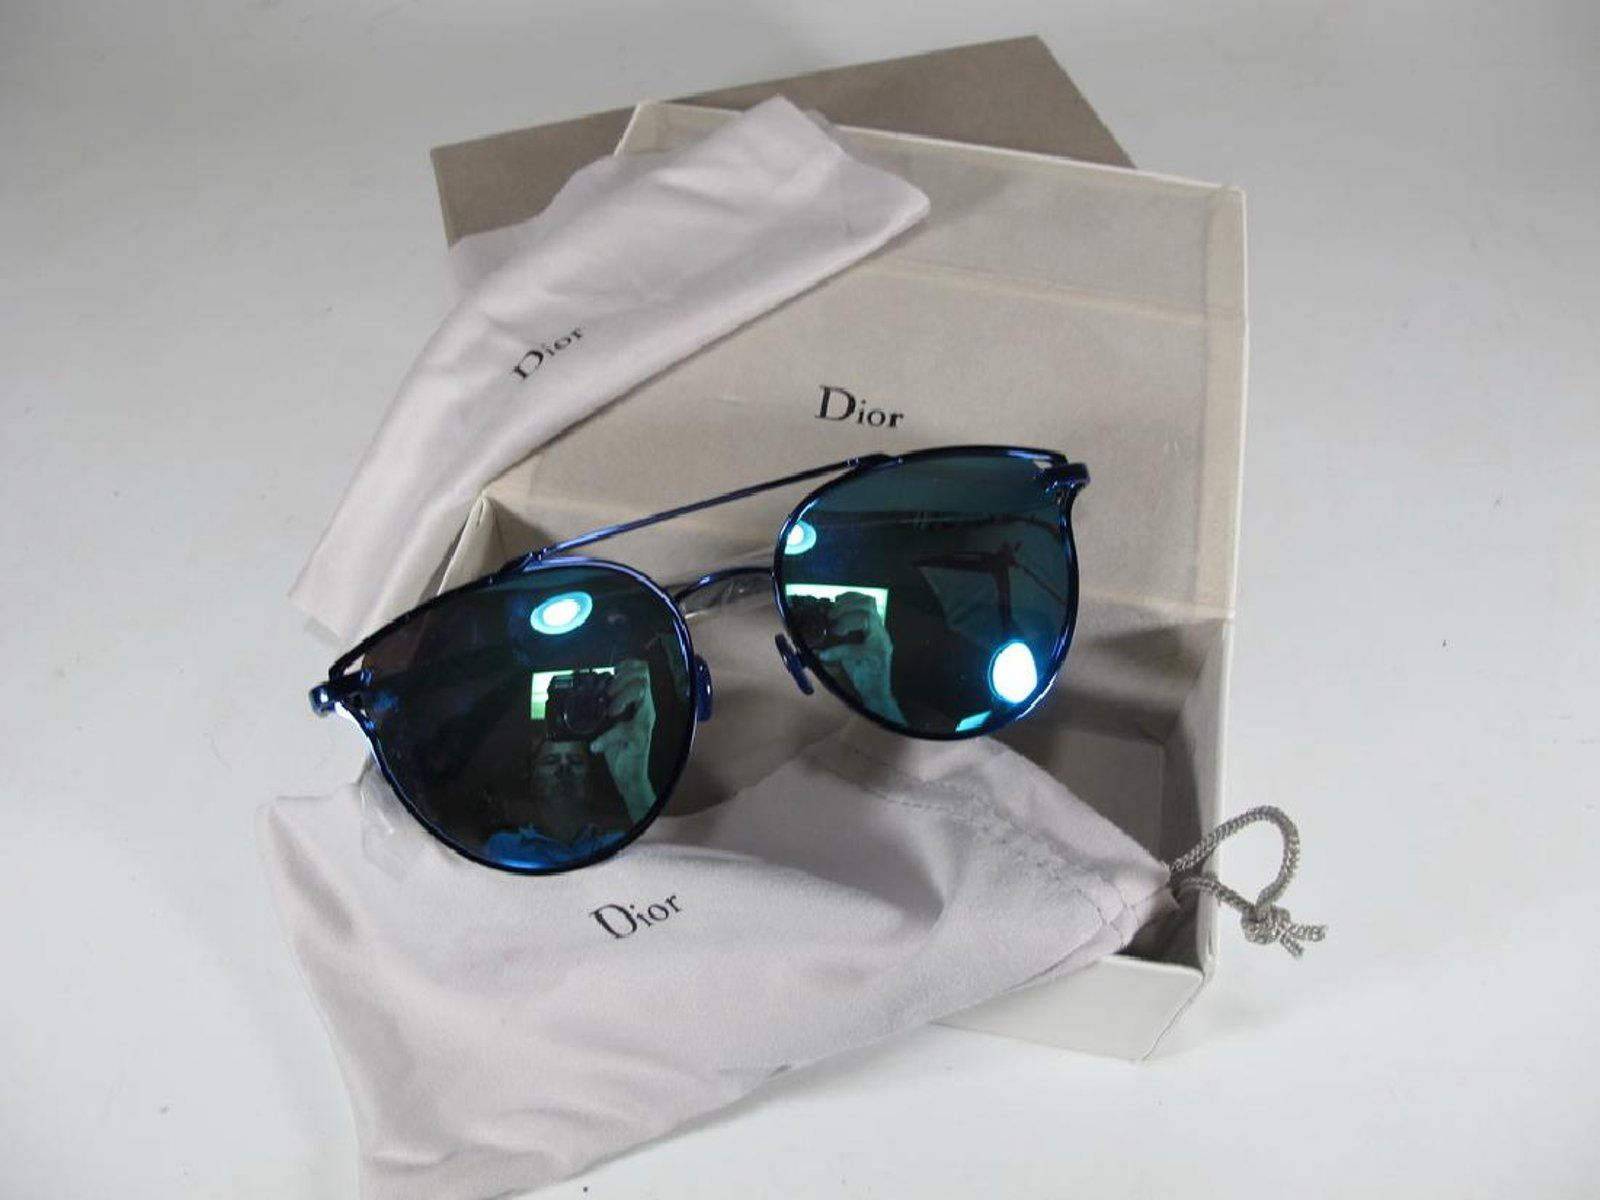 39ec8ef05038c New Christian Dior sunglasses in a box Presentes Legais, Óculos De Sol De  Luxo,